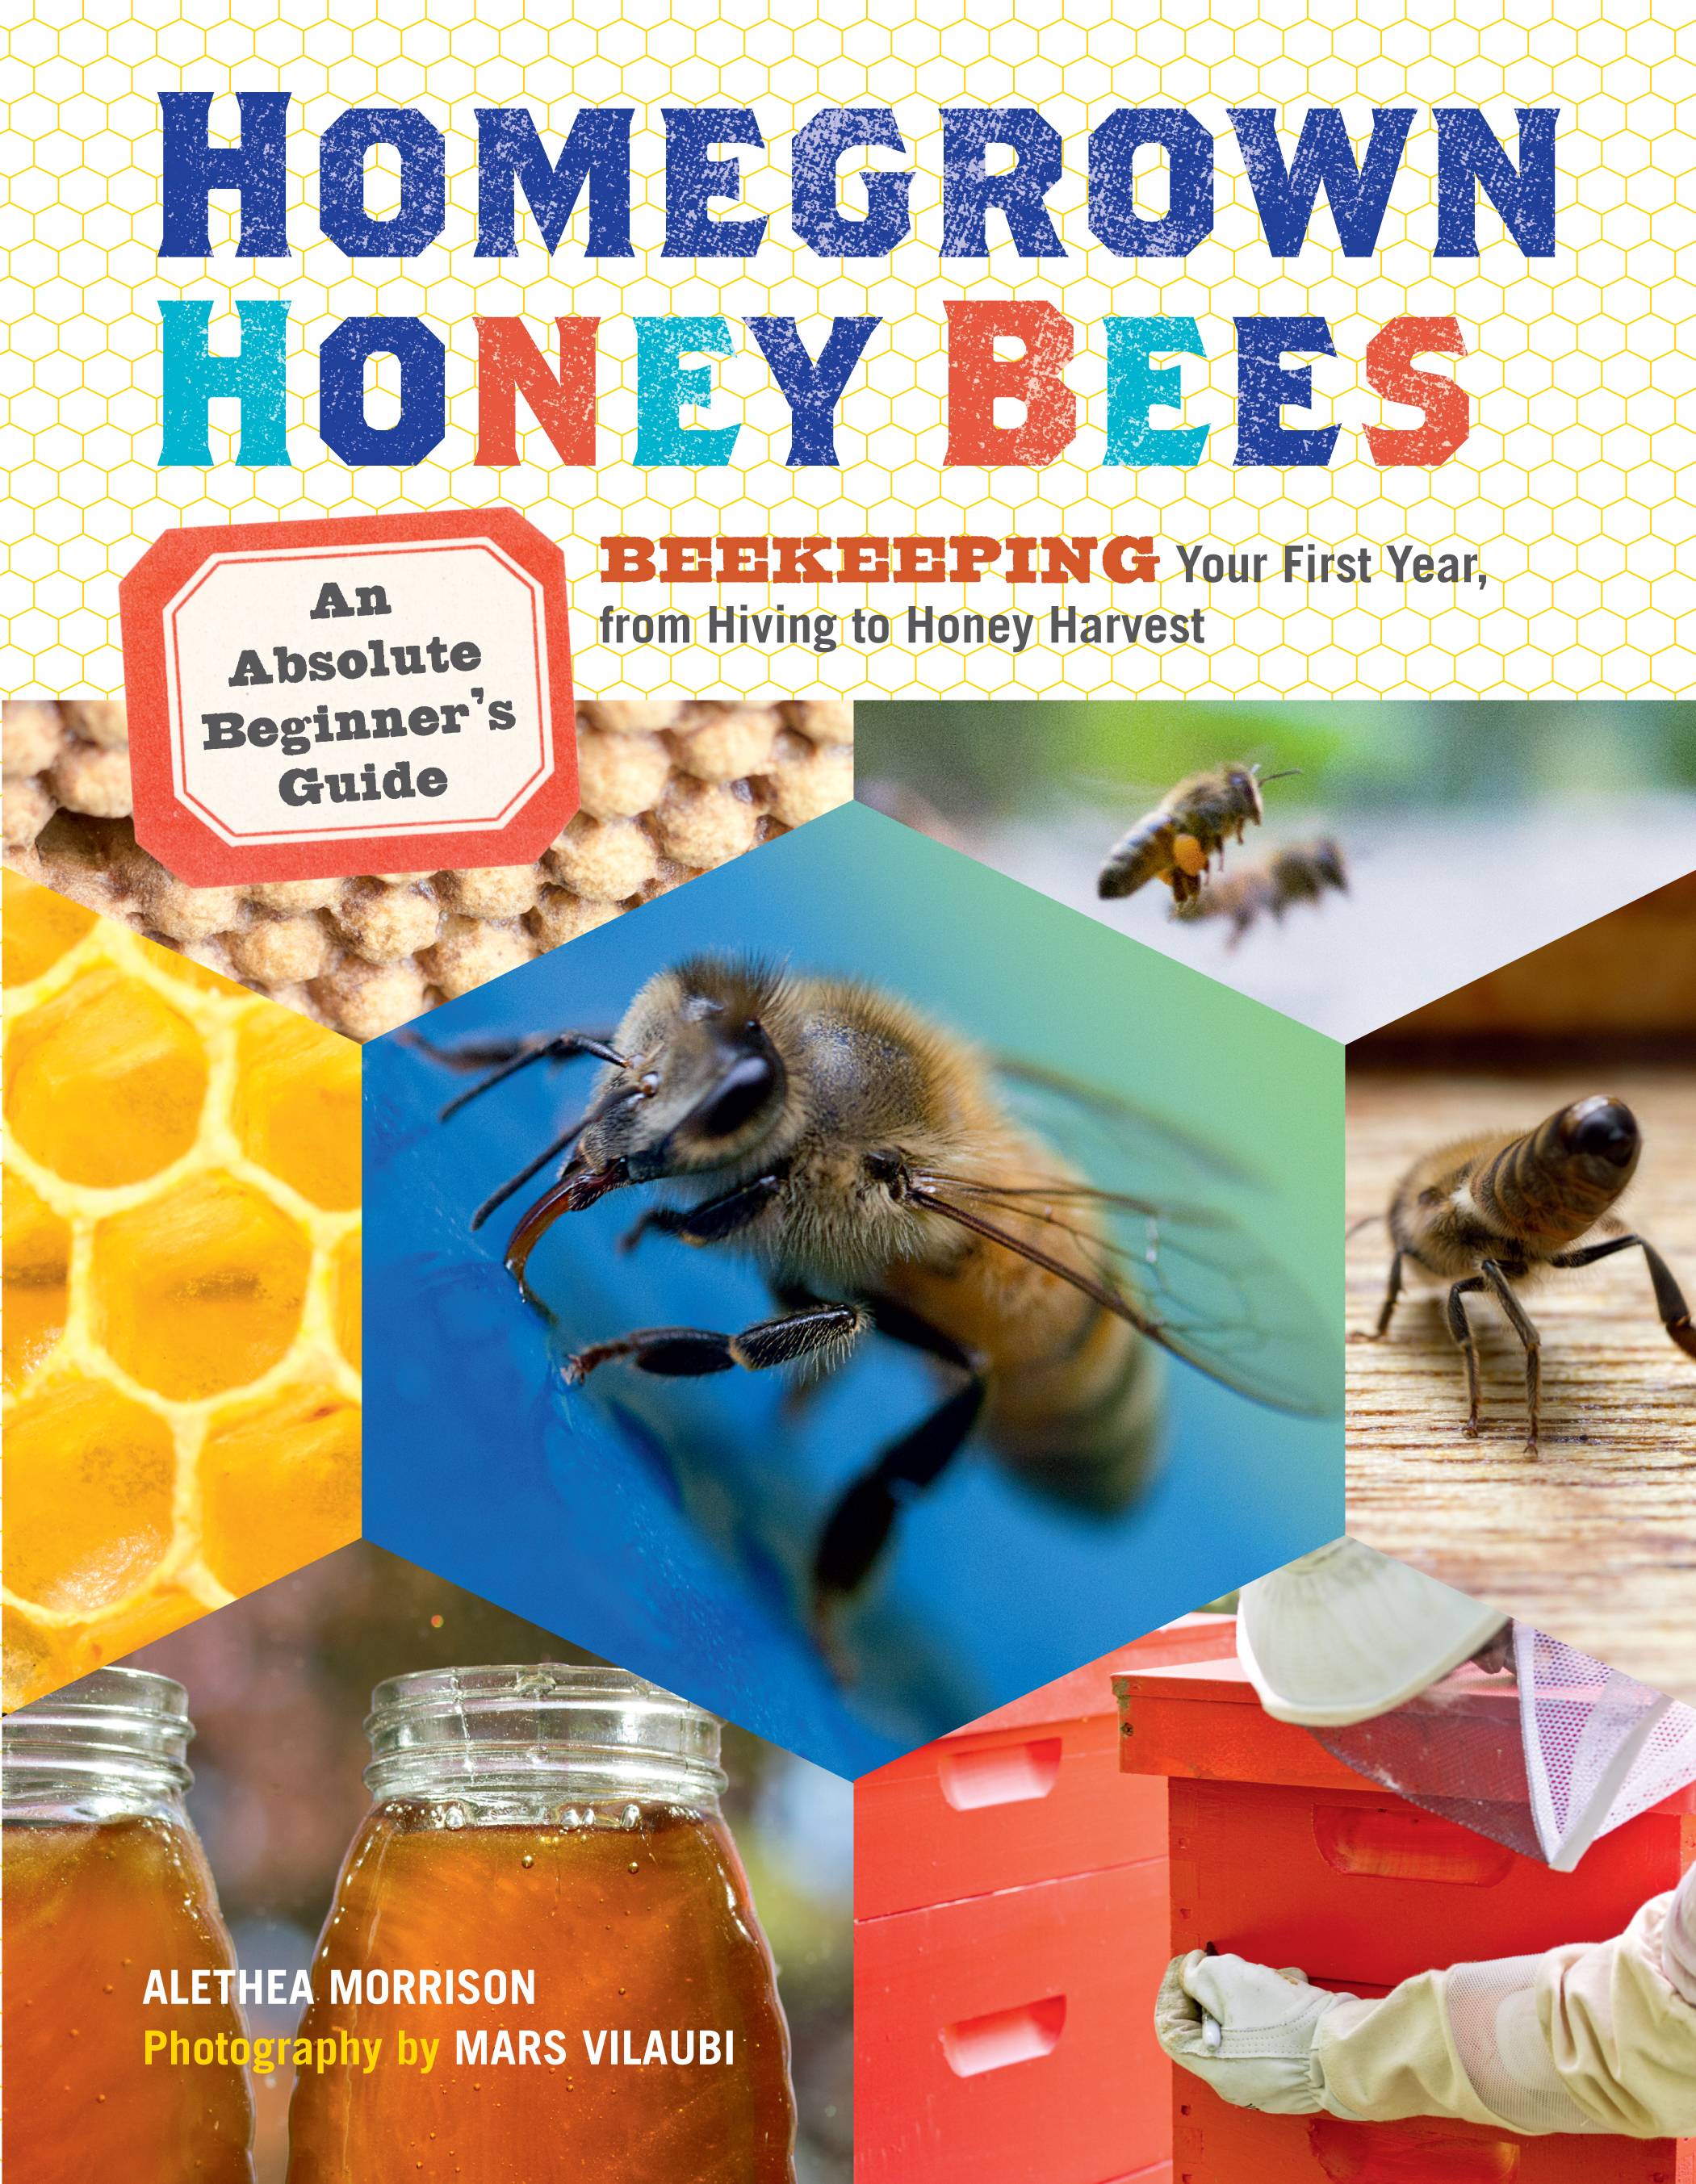 Homegrown Honey Bees An Absolute Beginner's Guide to Beekeeping Your First Year, from Hiving to Honey Harvest - Alethea Morrison